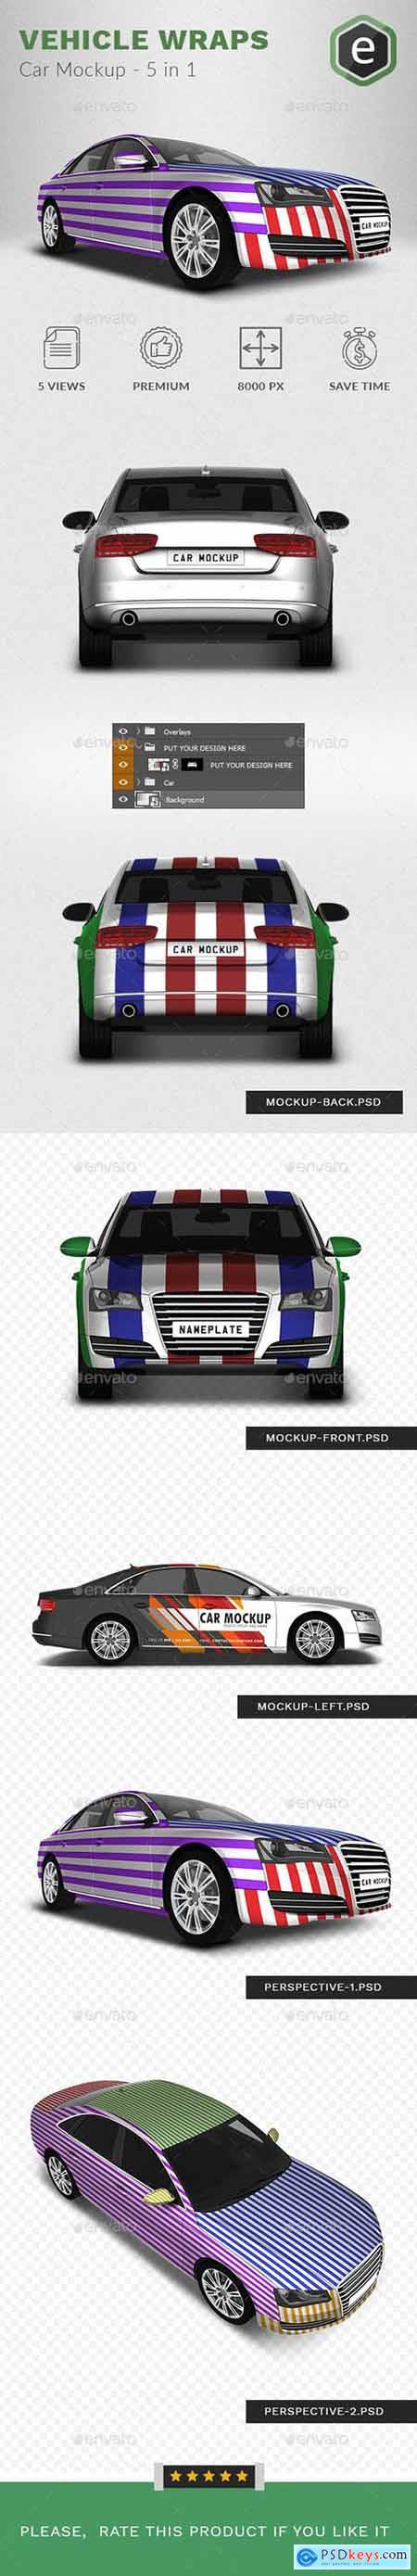 Graphicriver Car Mockup Based on Audi A8 - 5 In 1